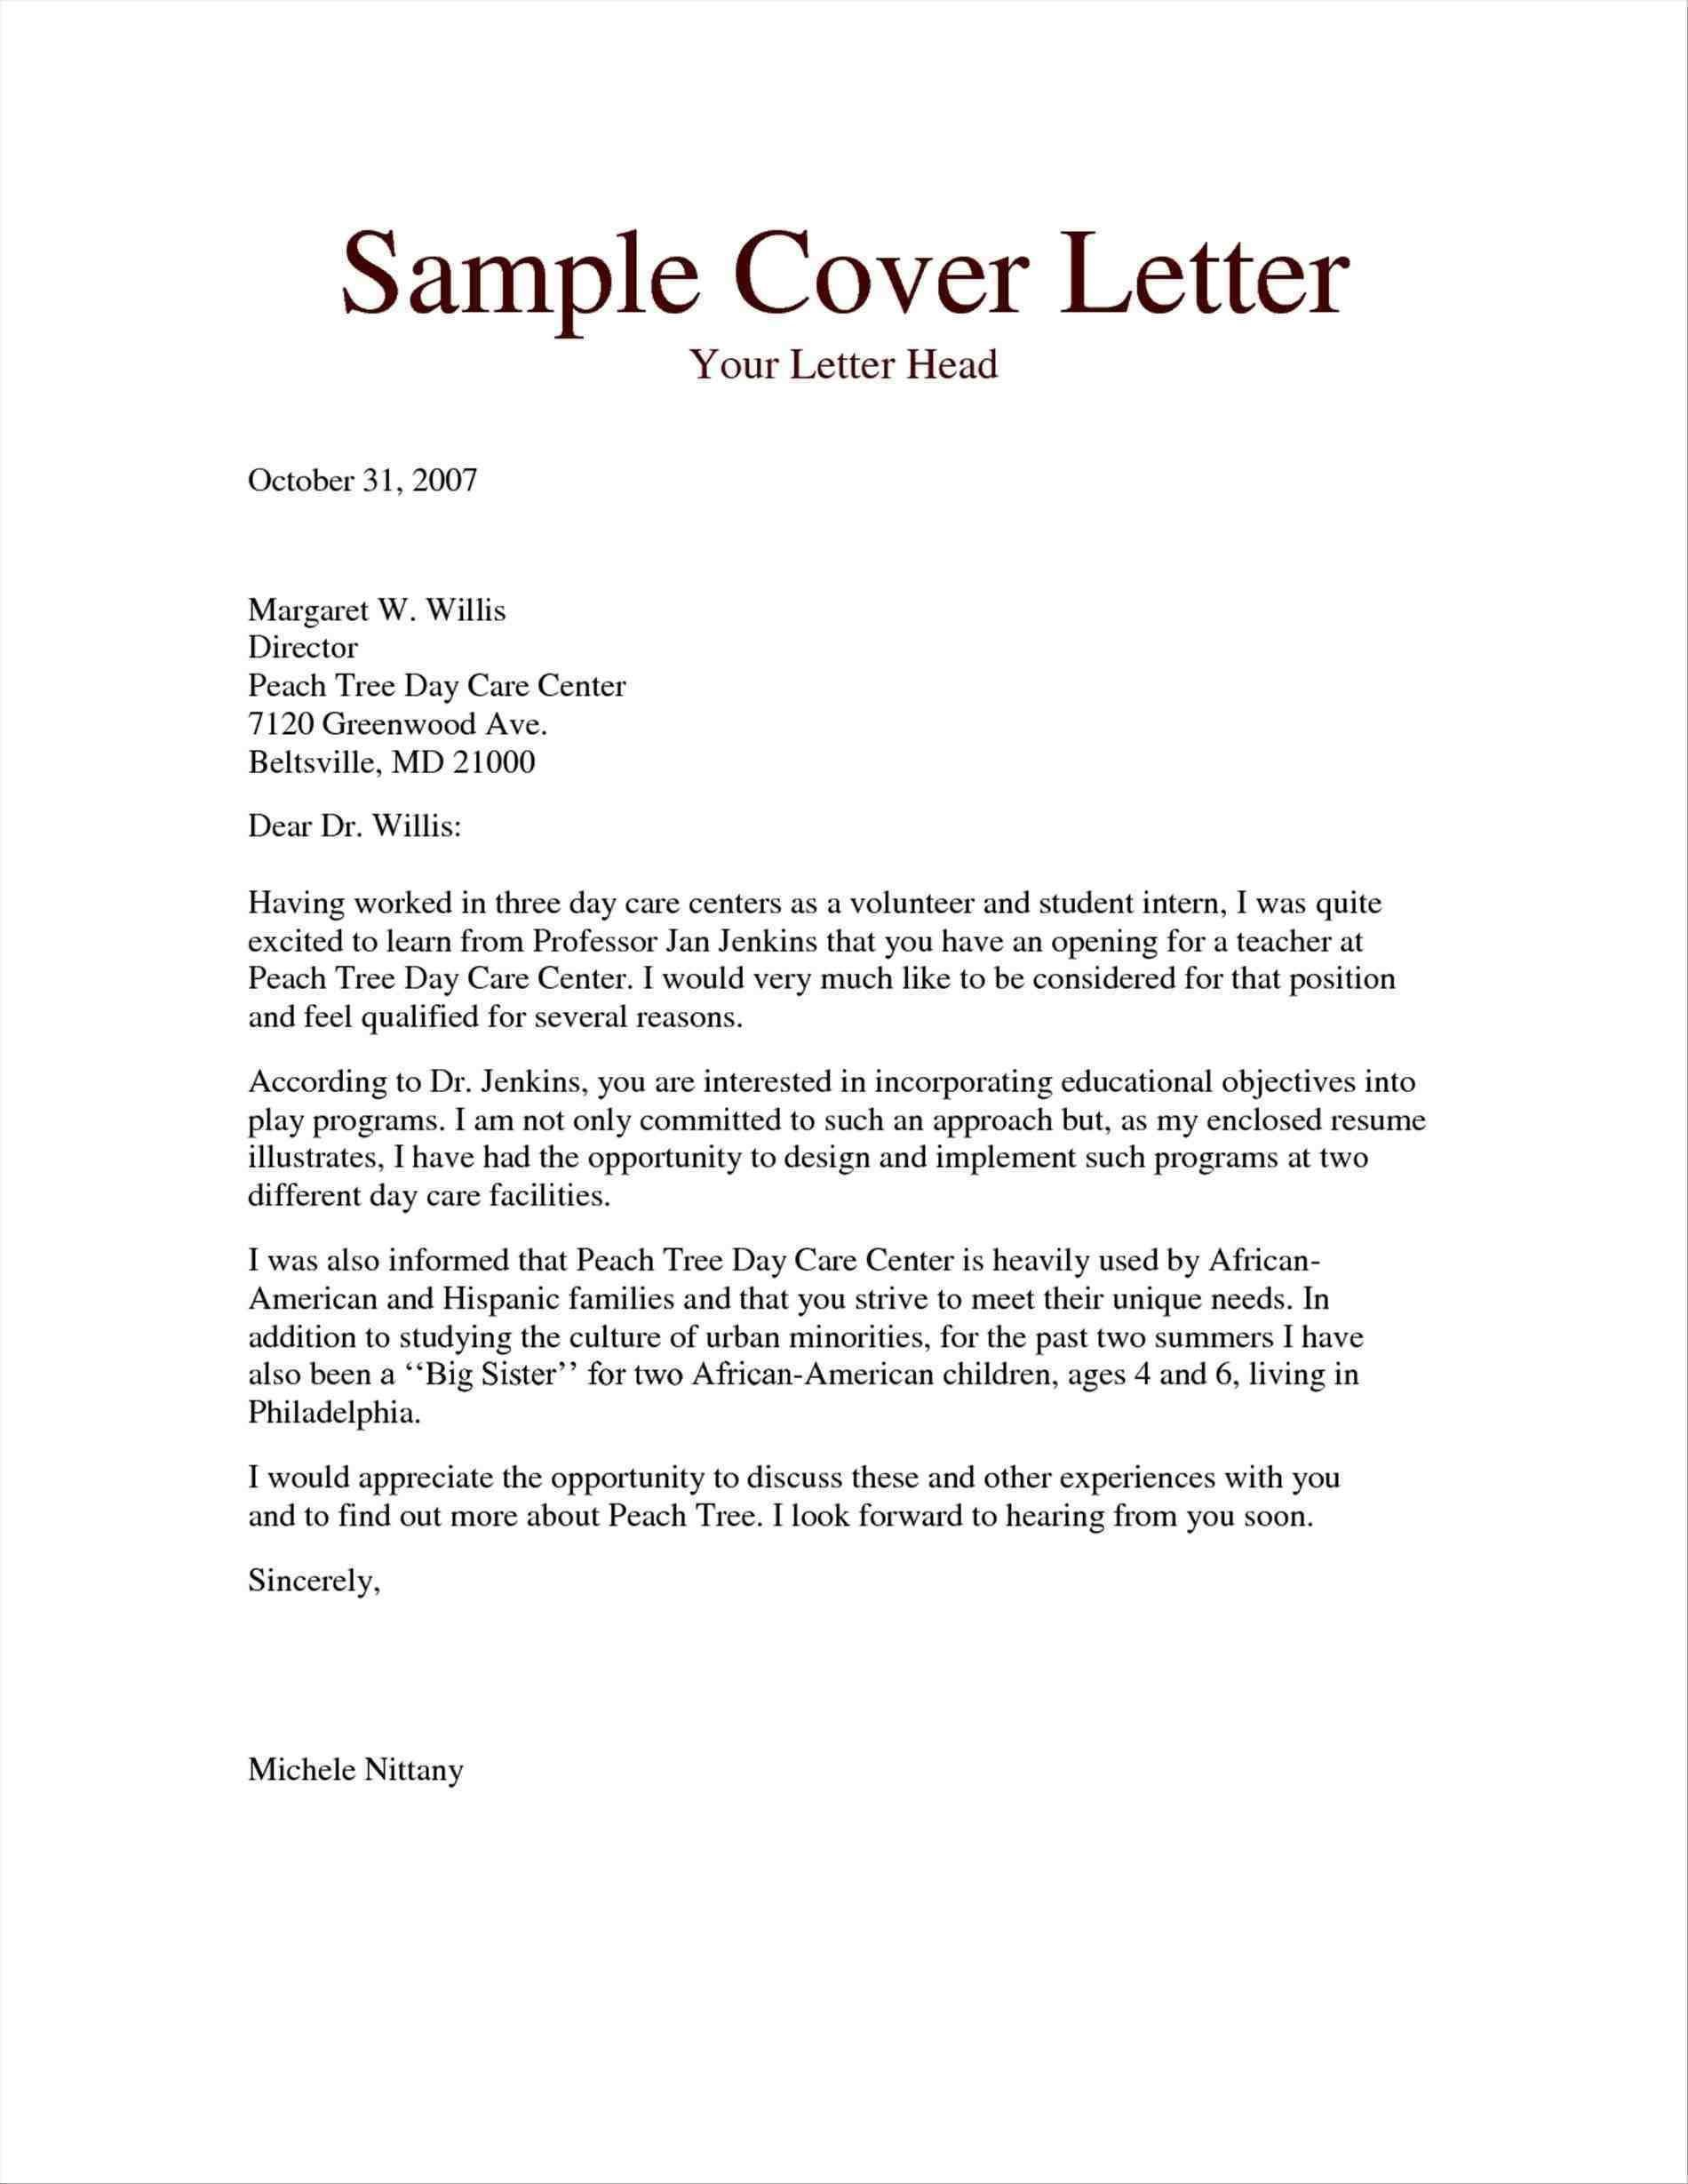 Teacher Aide Cover Letter from www.addictionary.org